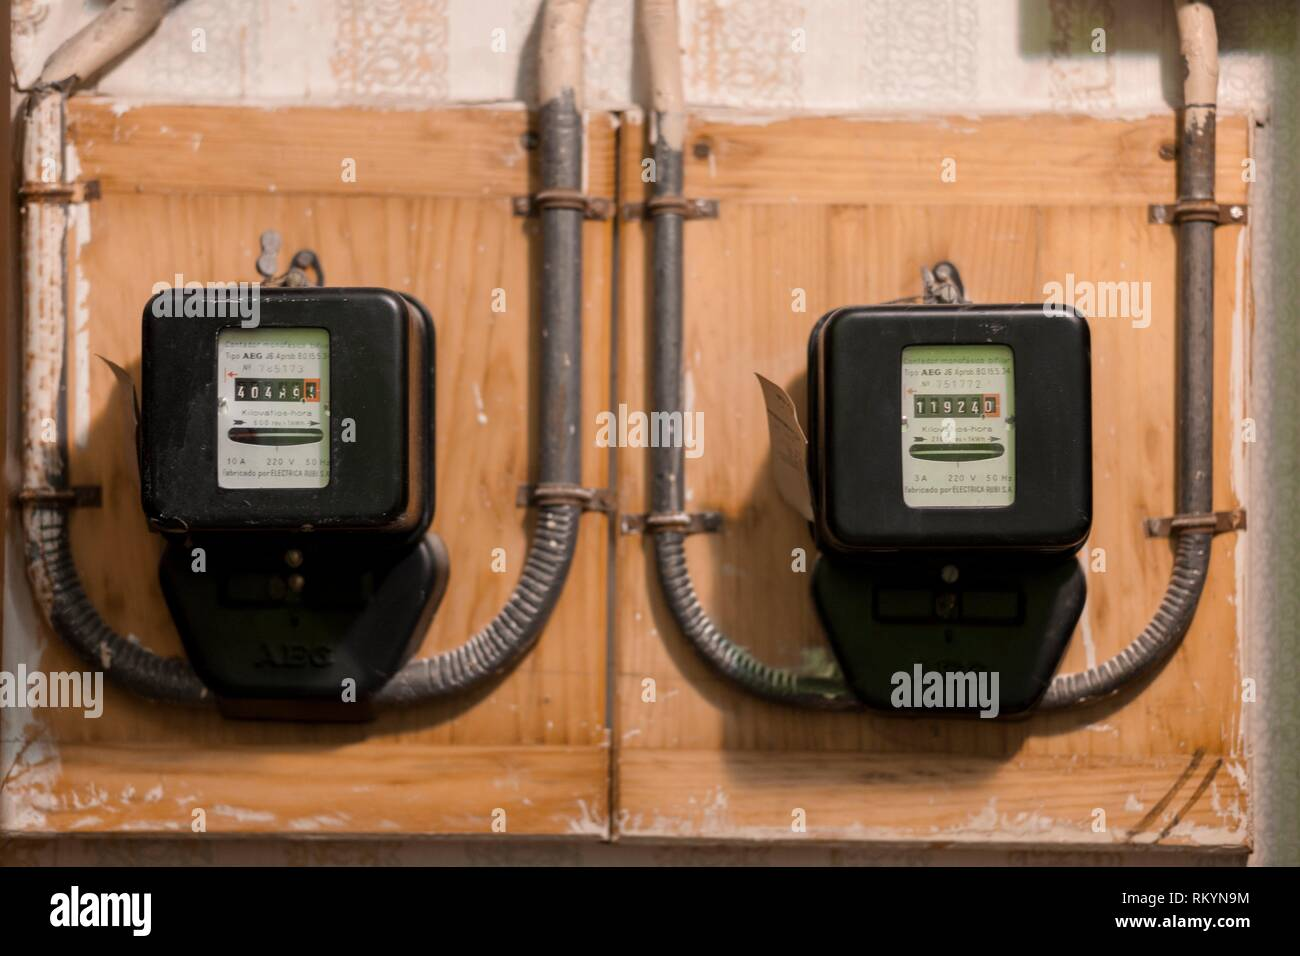 Old electric meter. - Stock Image